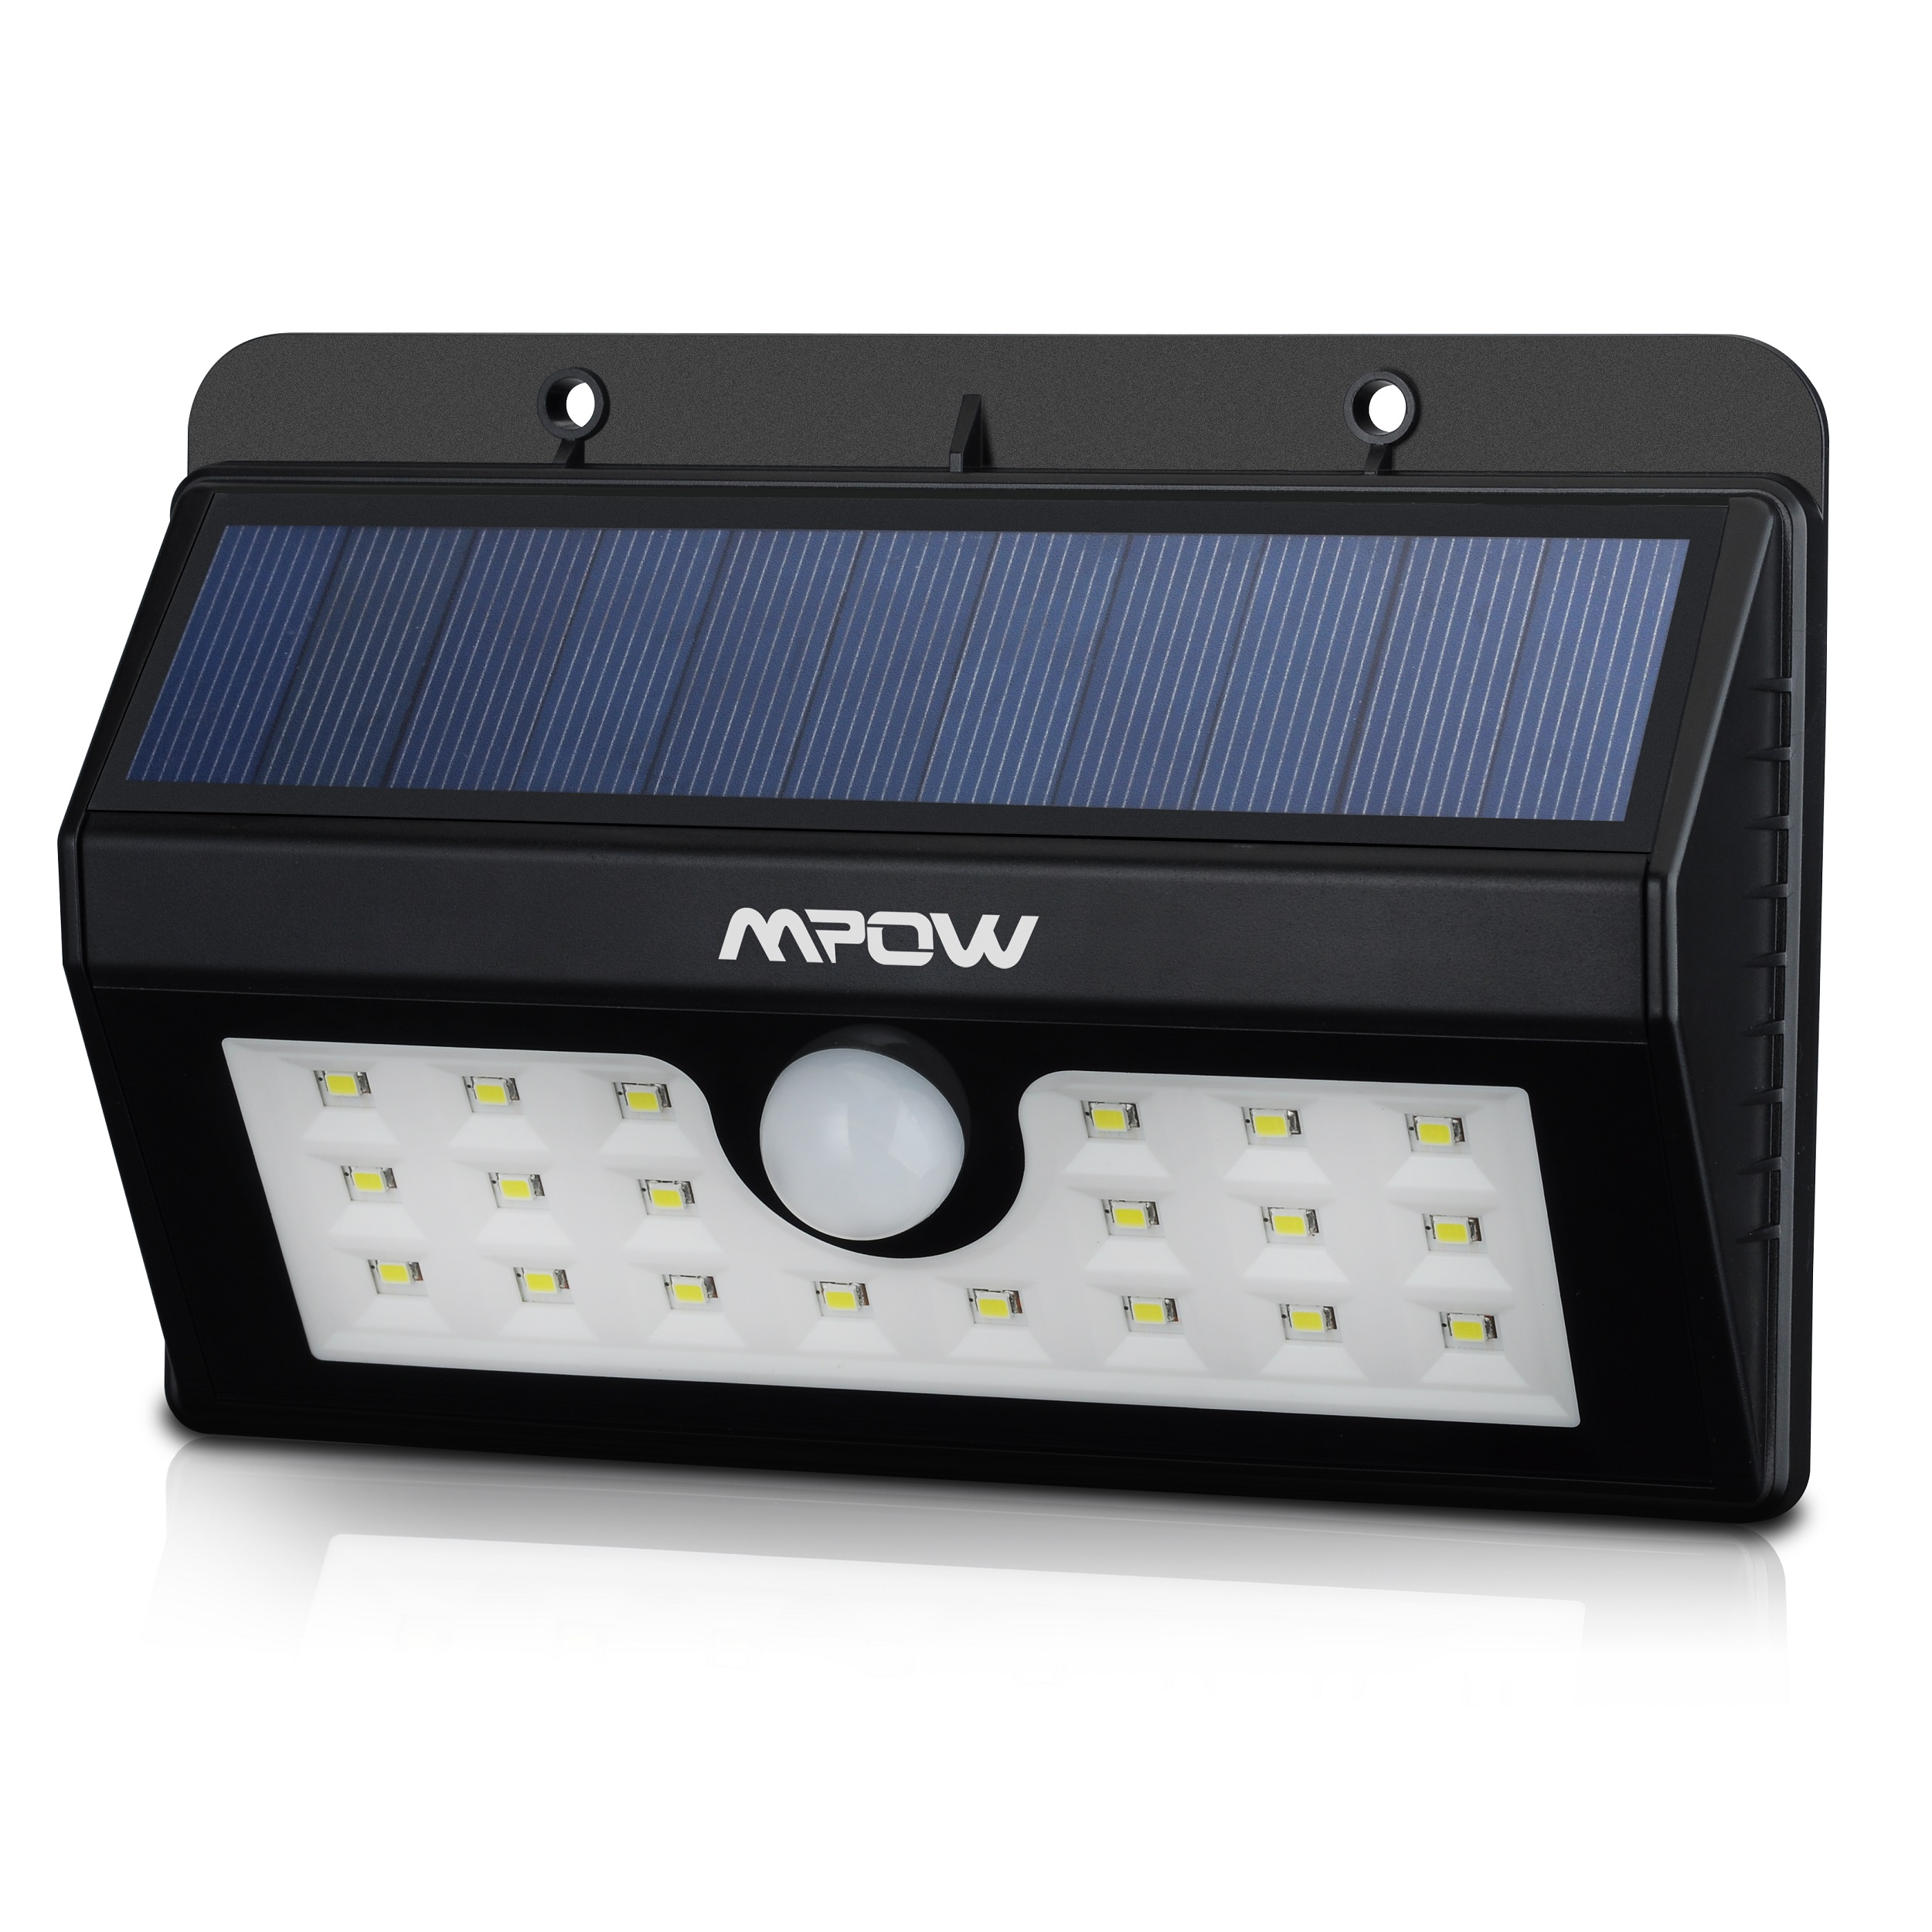 Mpow super bright 20 led solar powered wireless weatherproof mpow super bright 20 led solar powered wireless weatherproof outdoor light motion with 3 intelligent modes walmart aloadofball Images